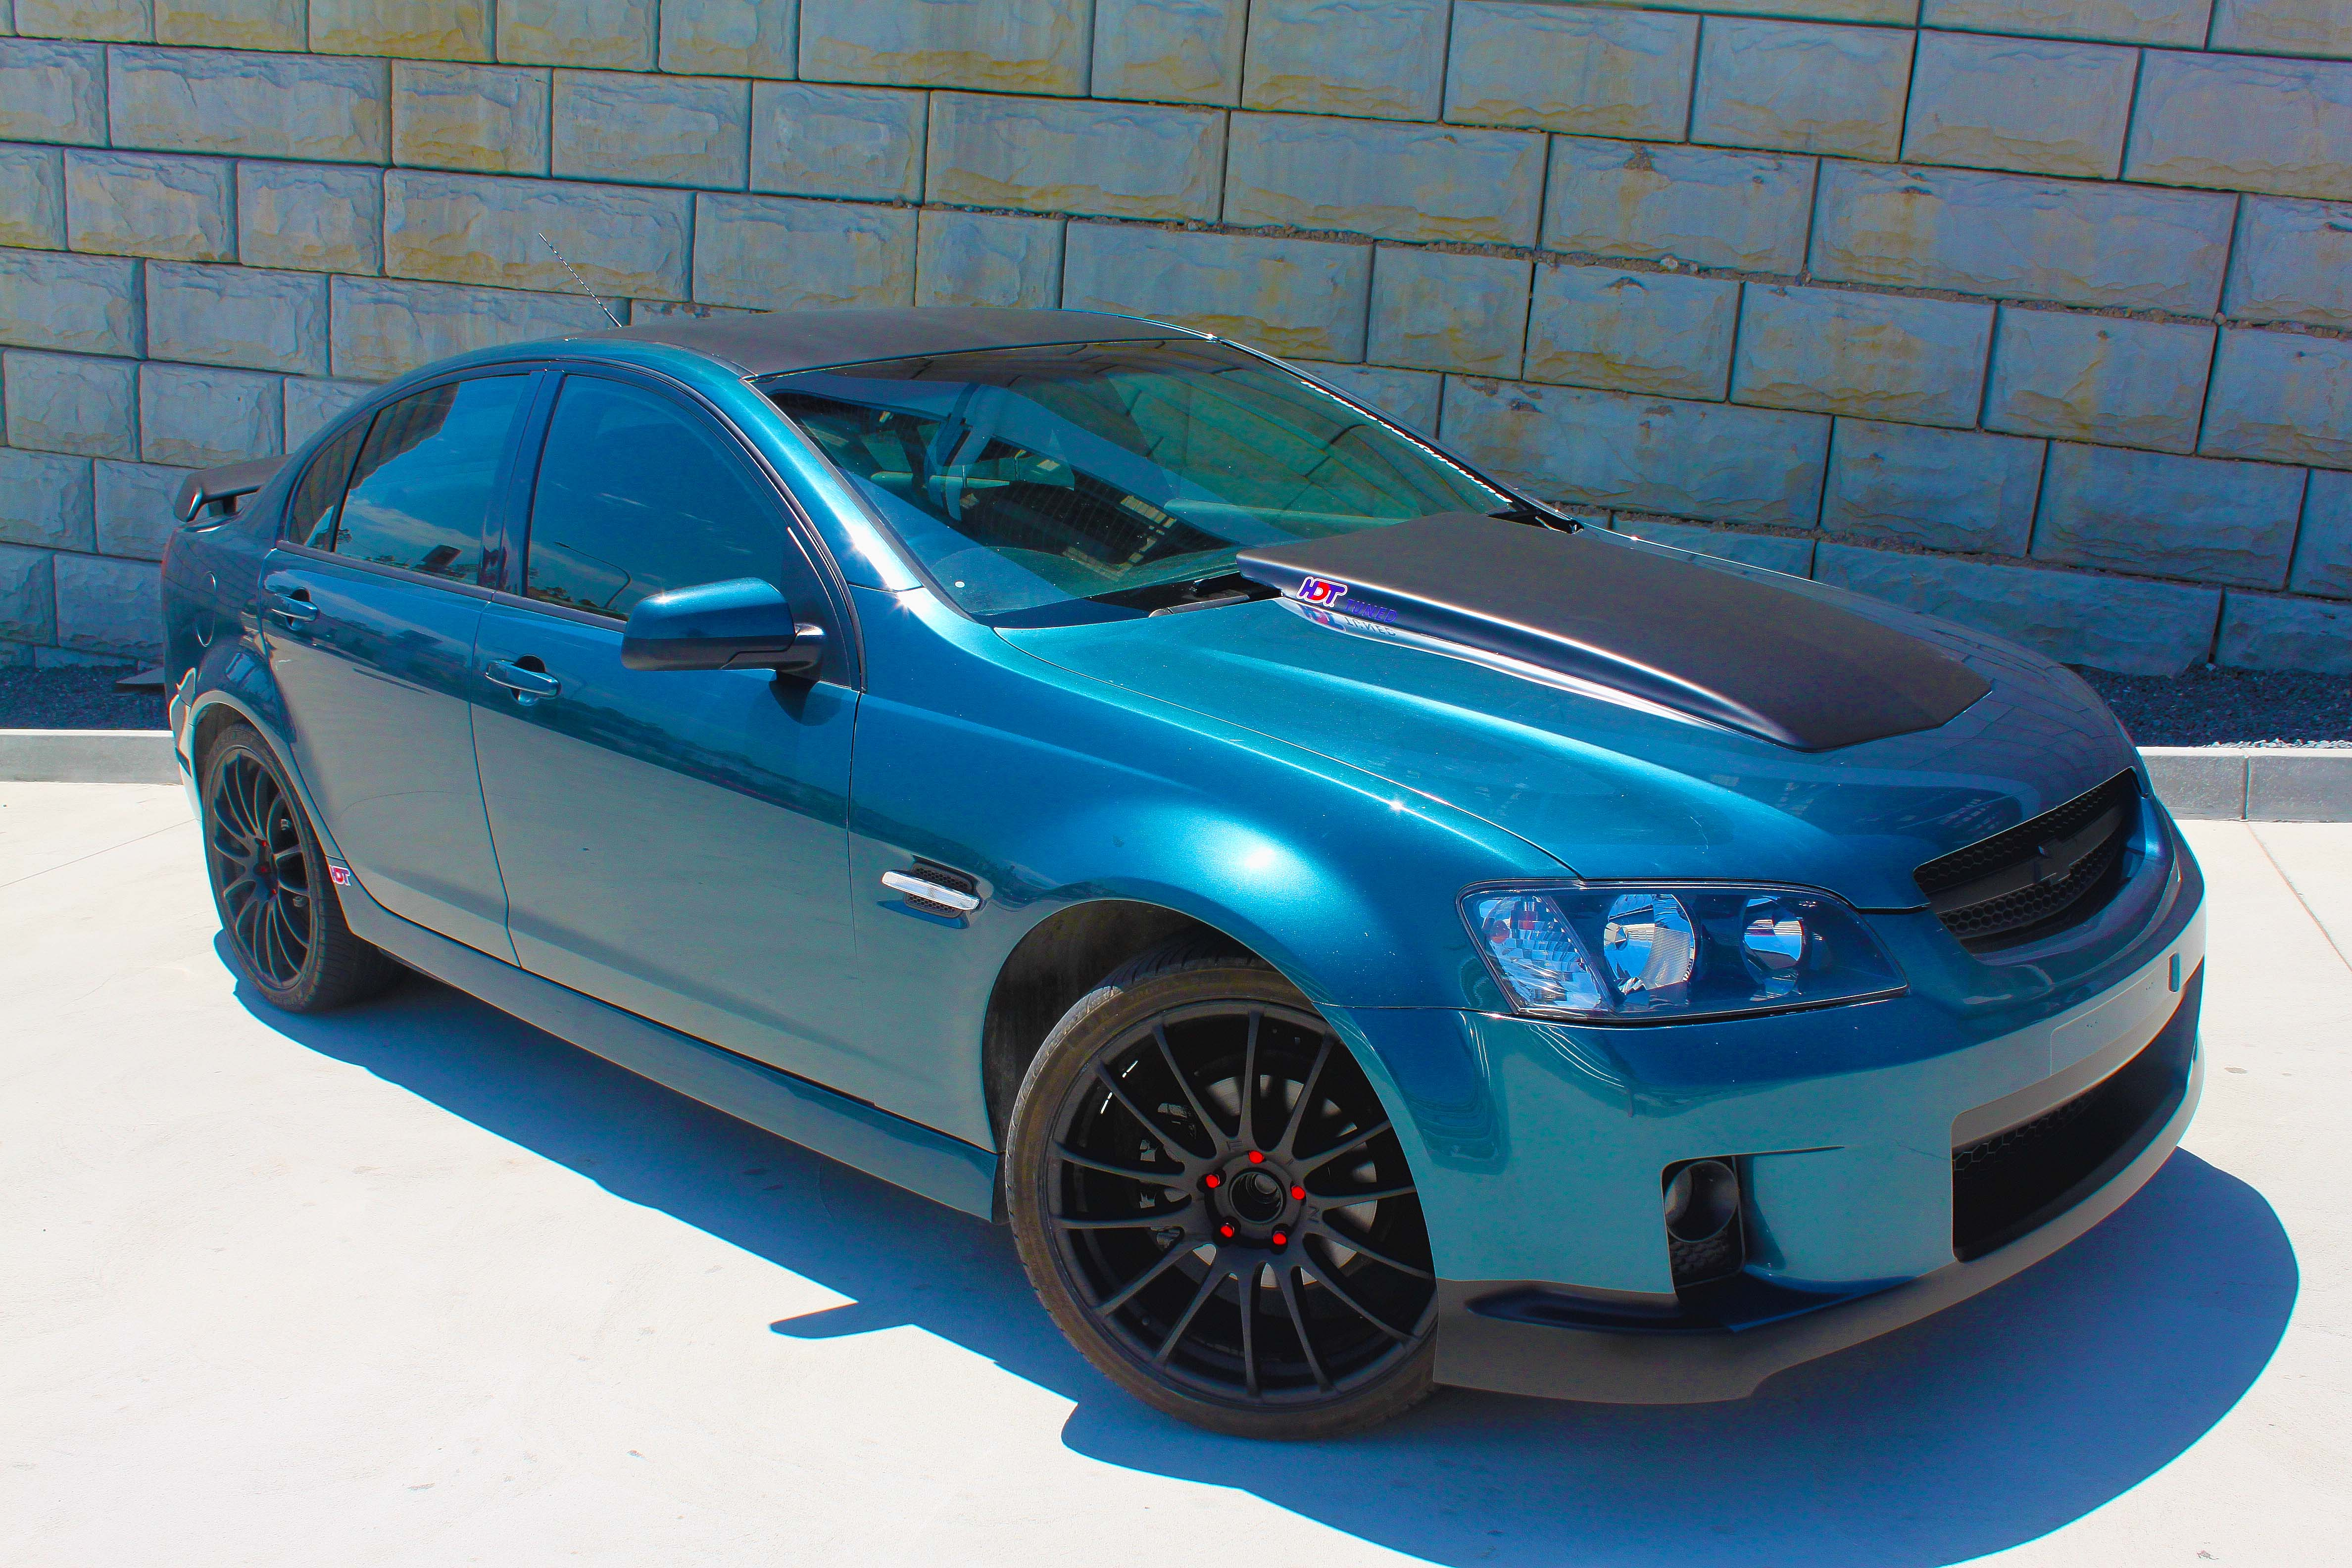 Holden commodore sv6 ve more information holden commodore sv6 ve vanachro Choice Image